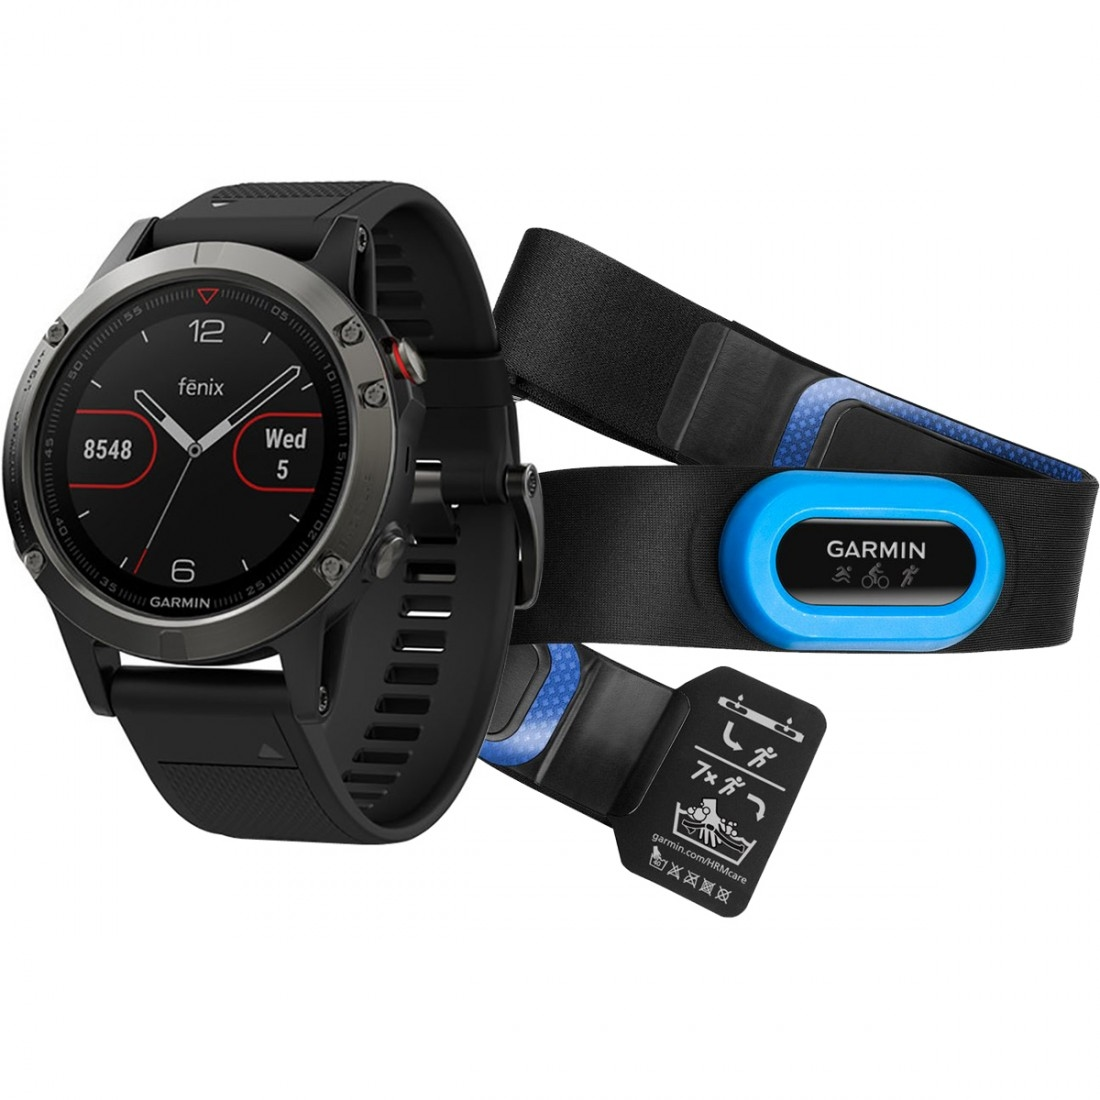 Black Slate Band : Contachilometri garmin fēnix hrm slate gray with black